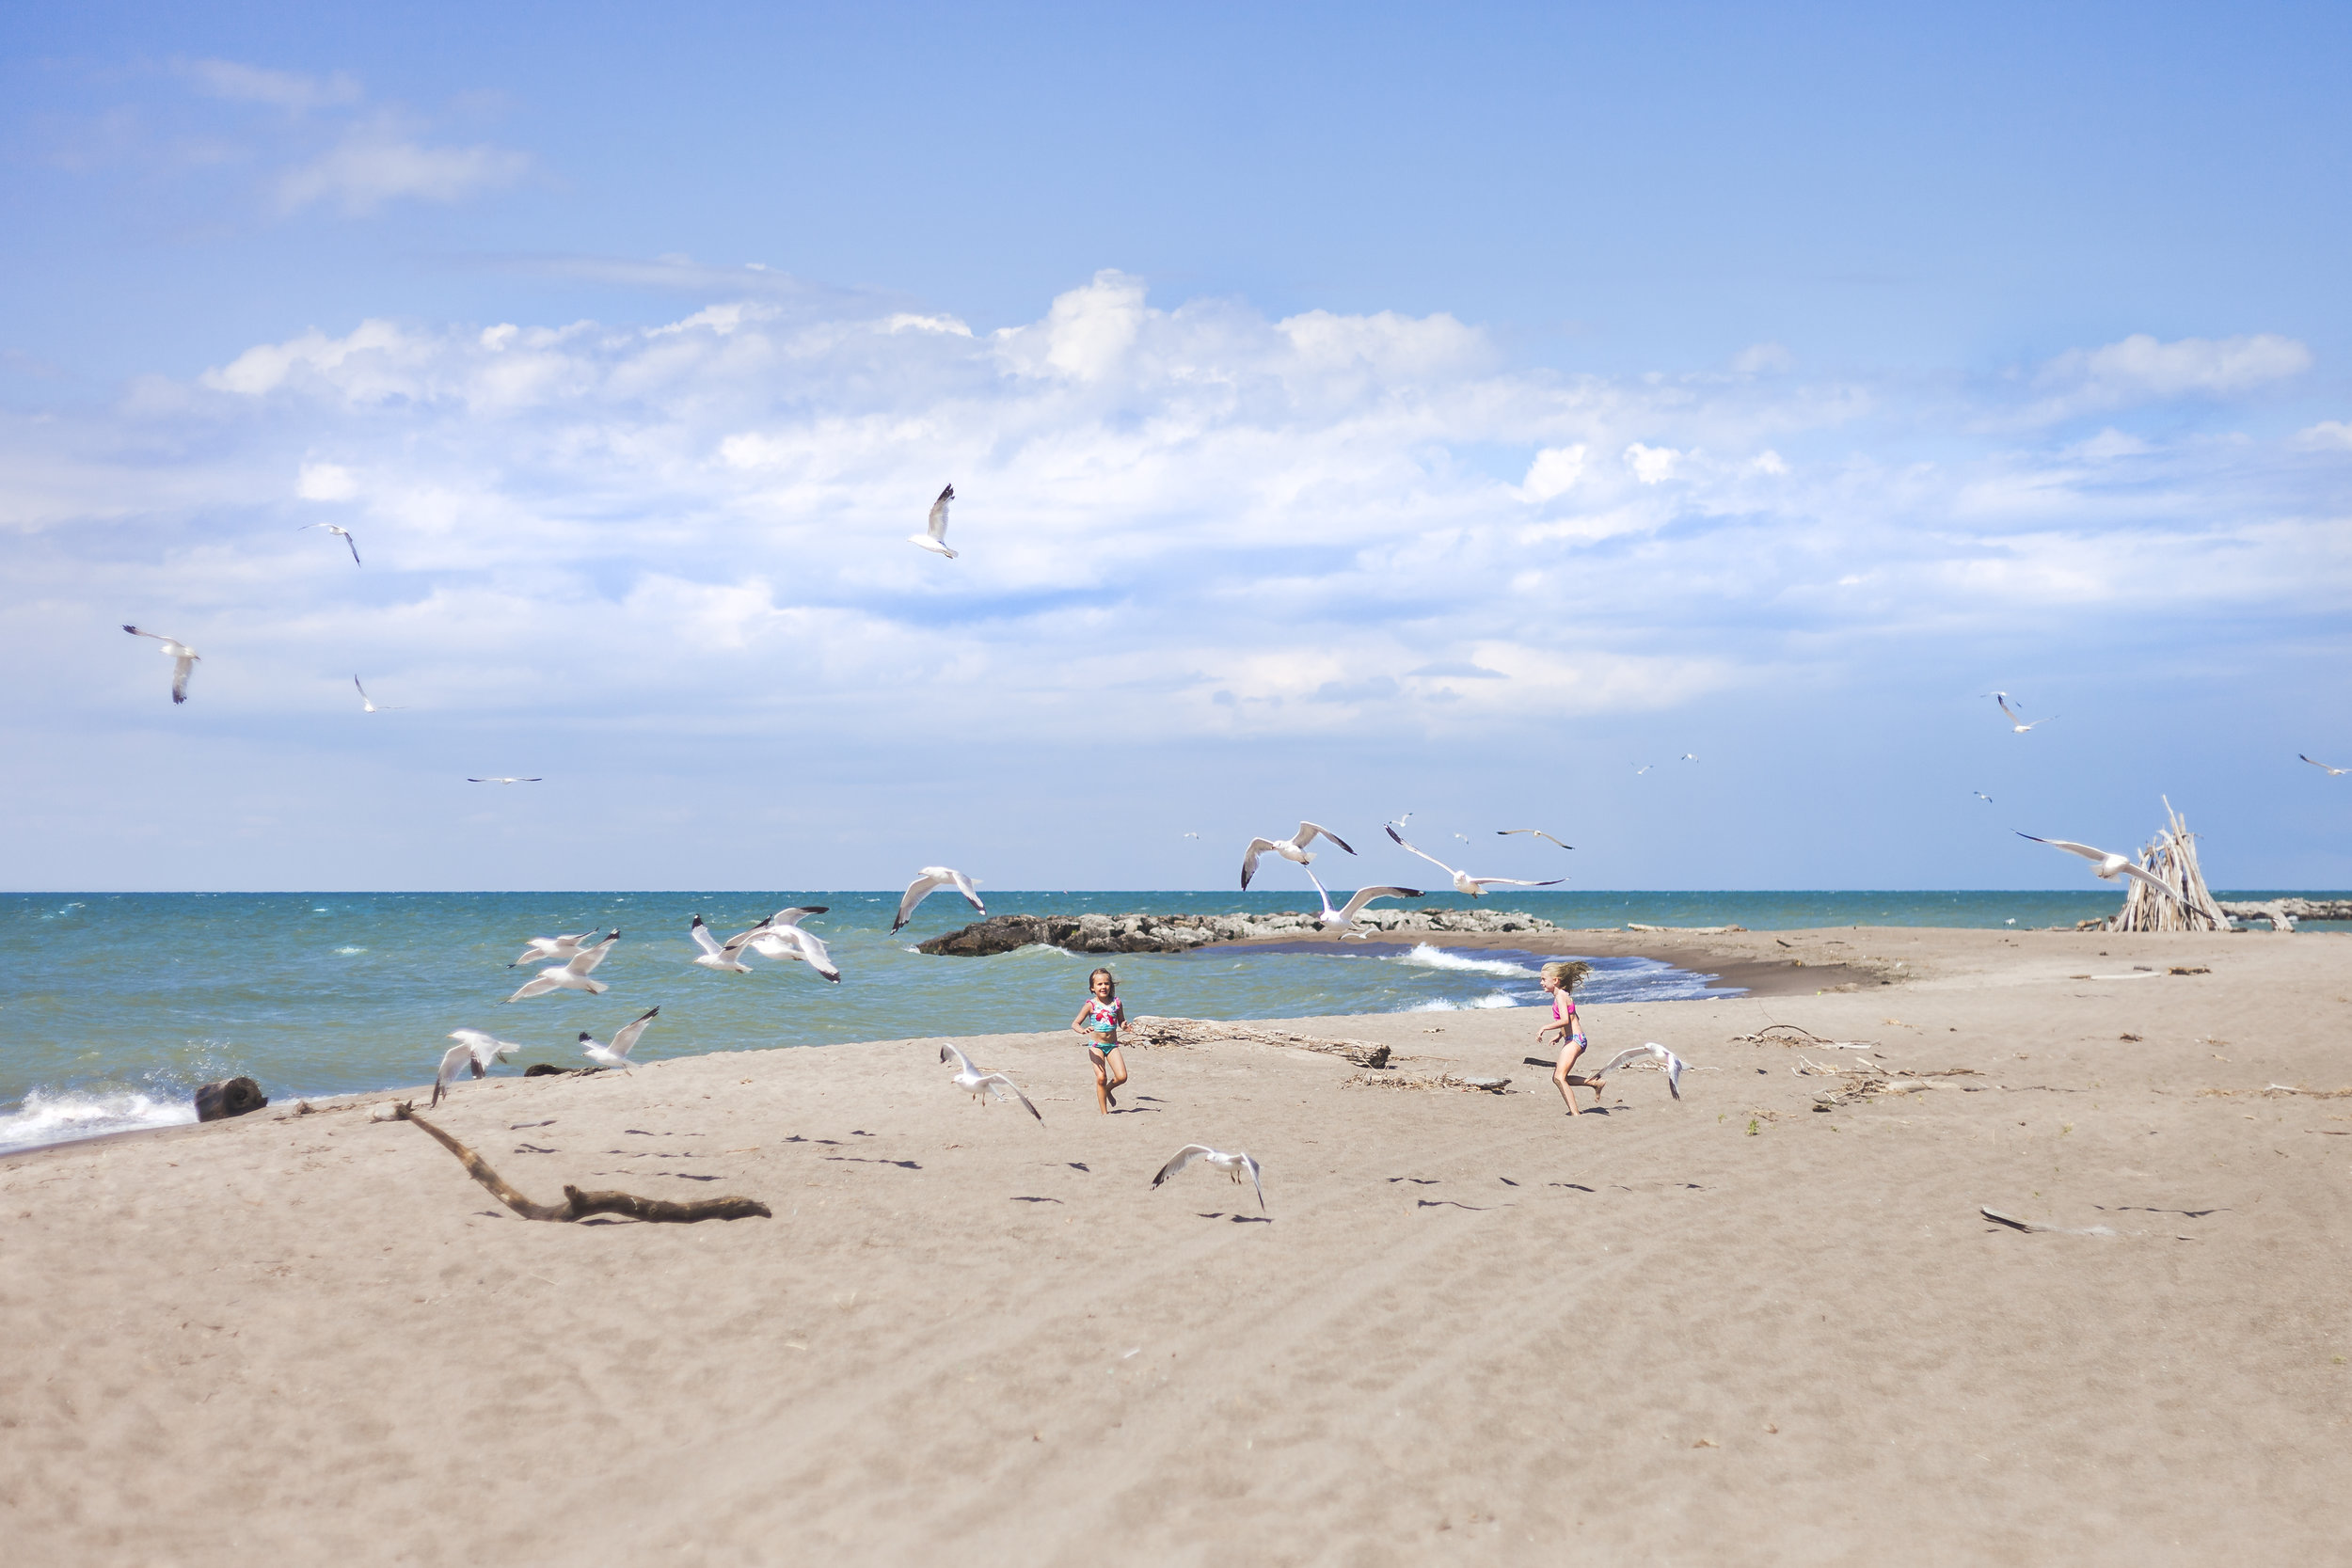 girls on beach with gulls.jpg